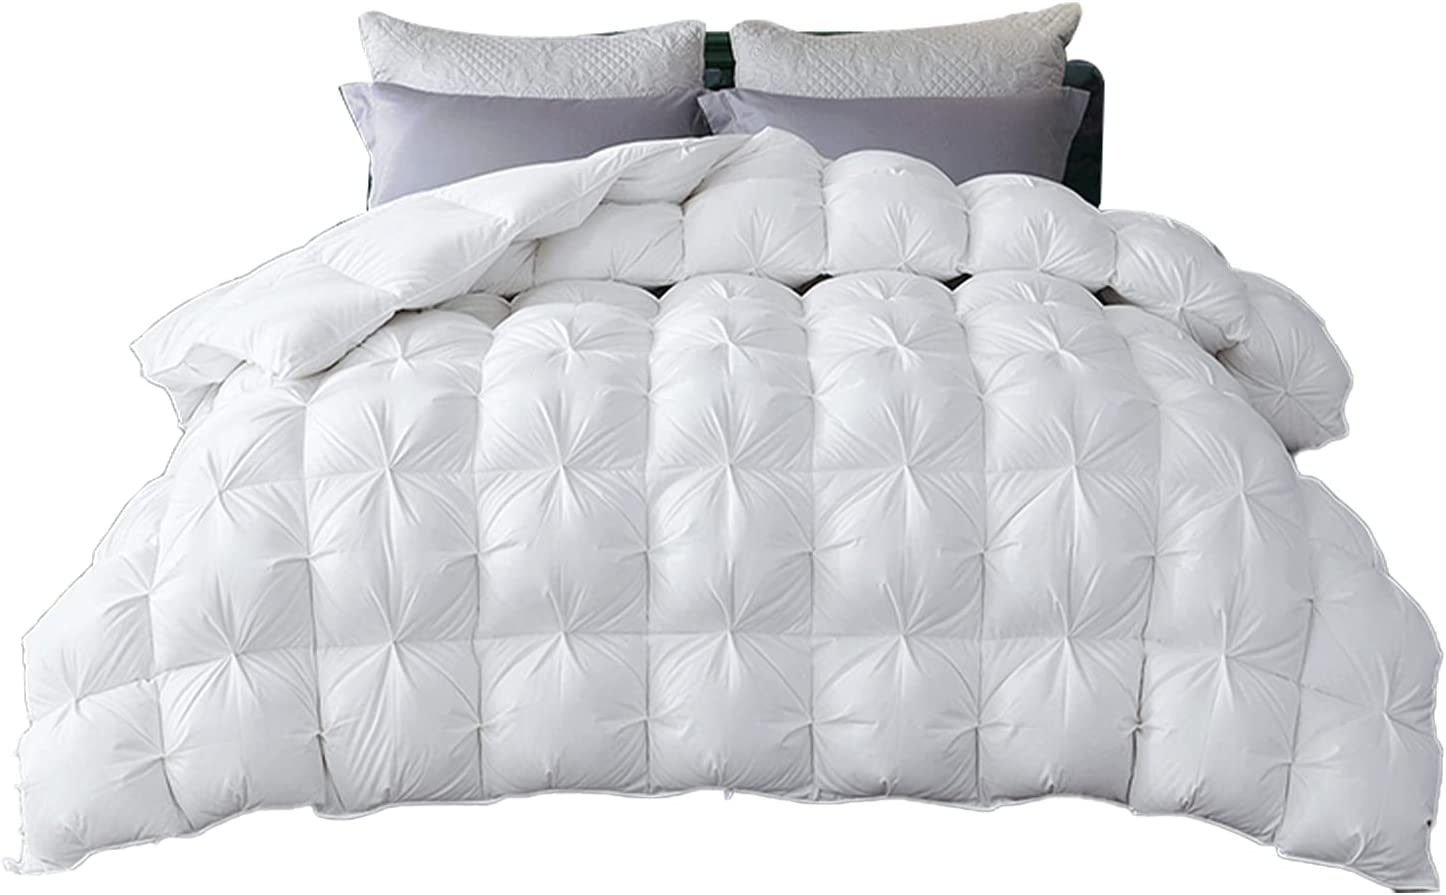 zzlamb White Pinch Pleat National online shopping uniform free shipping Goose Down for Season All Im Comforter